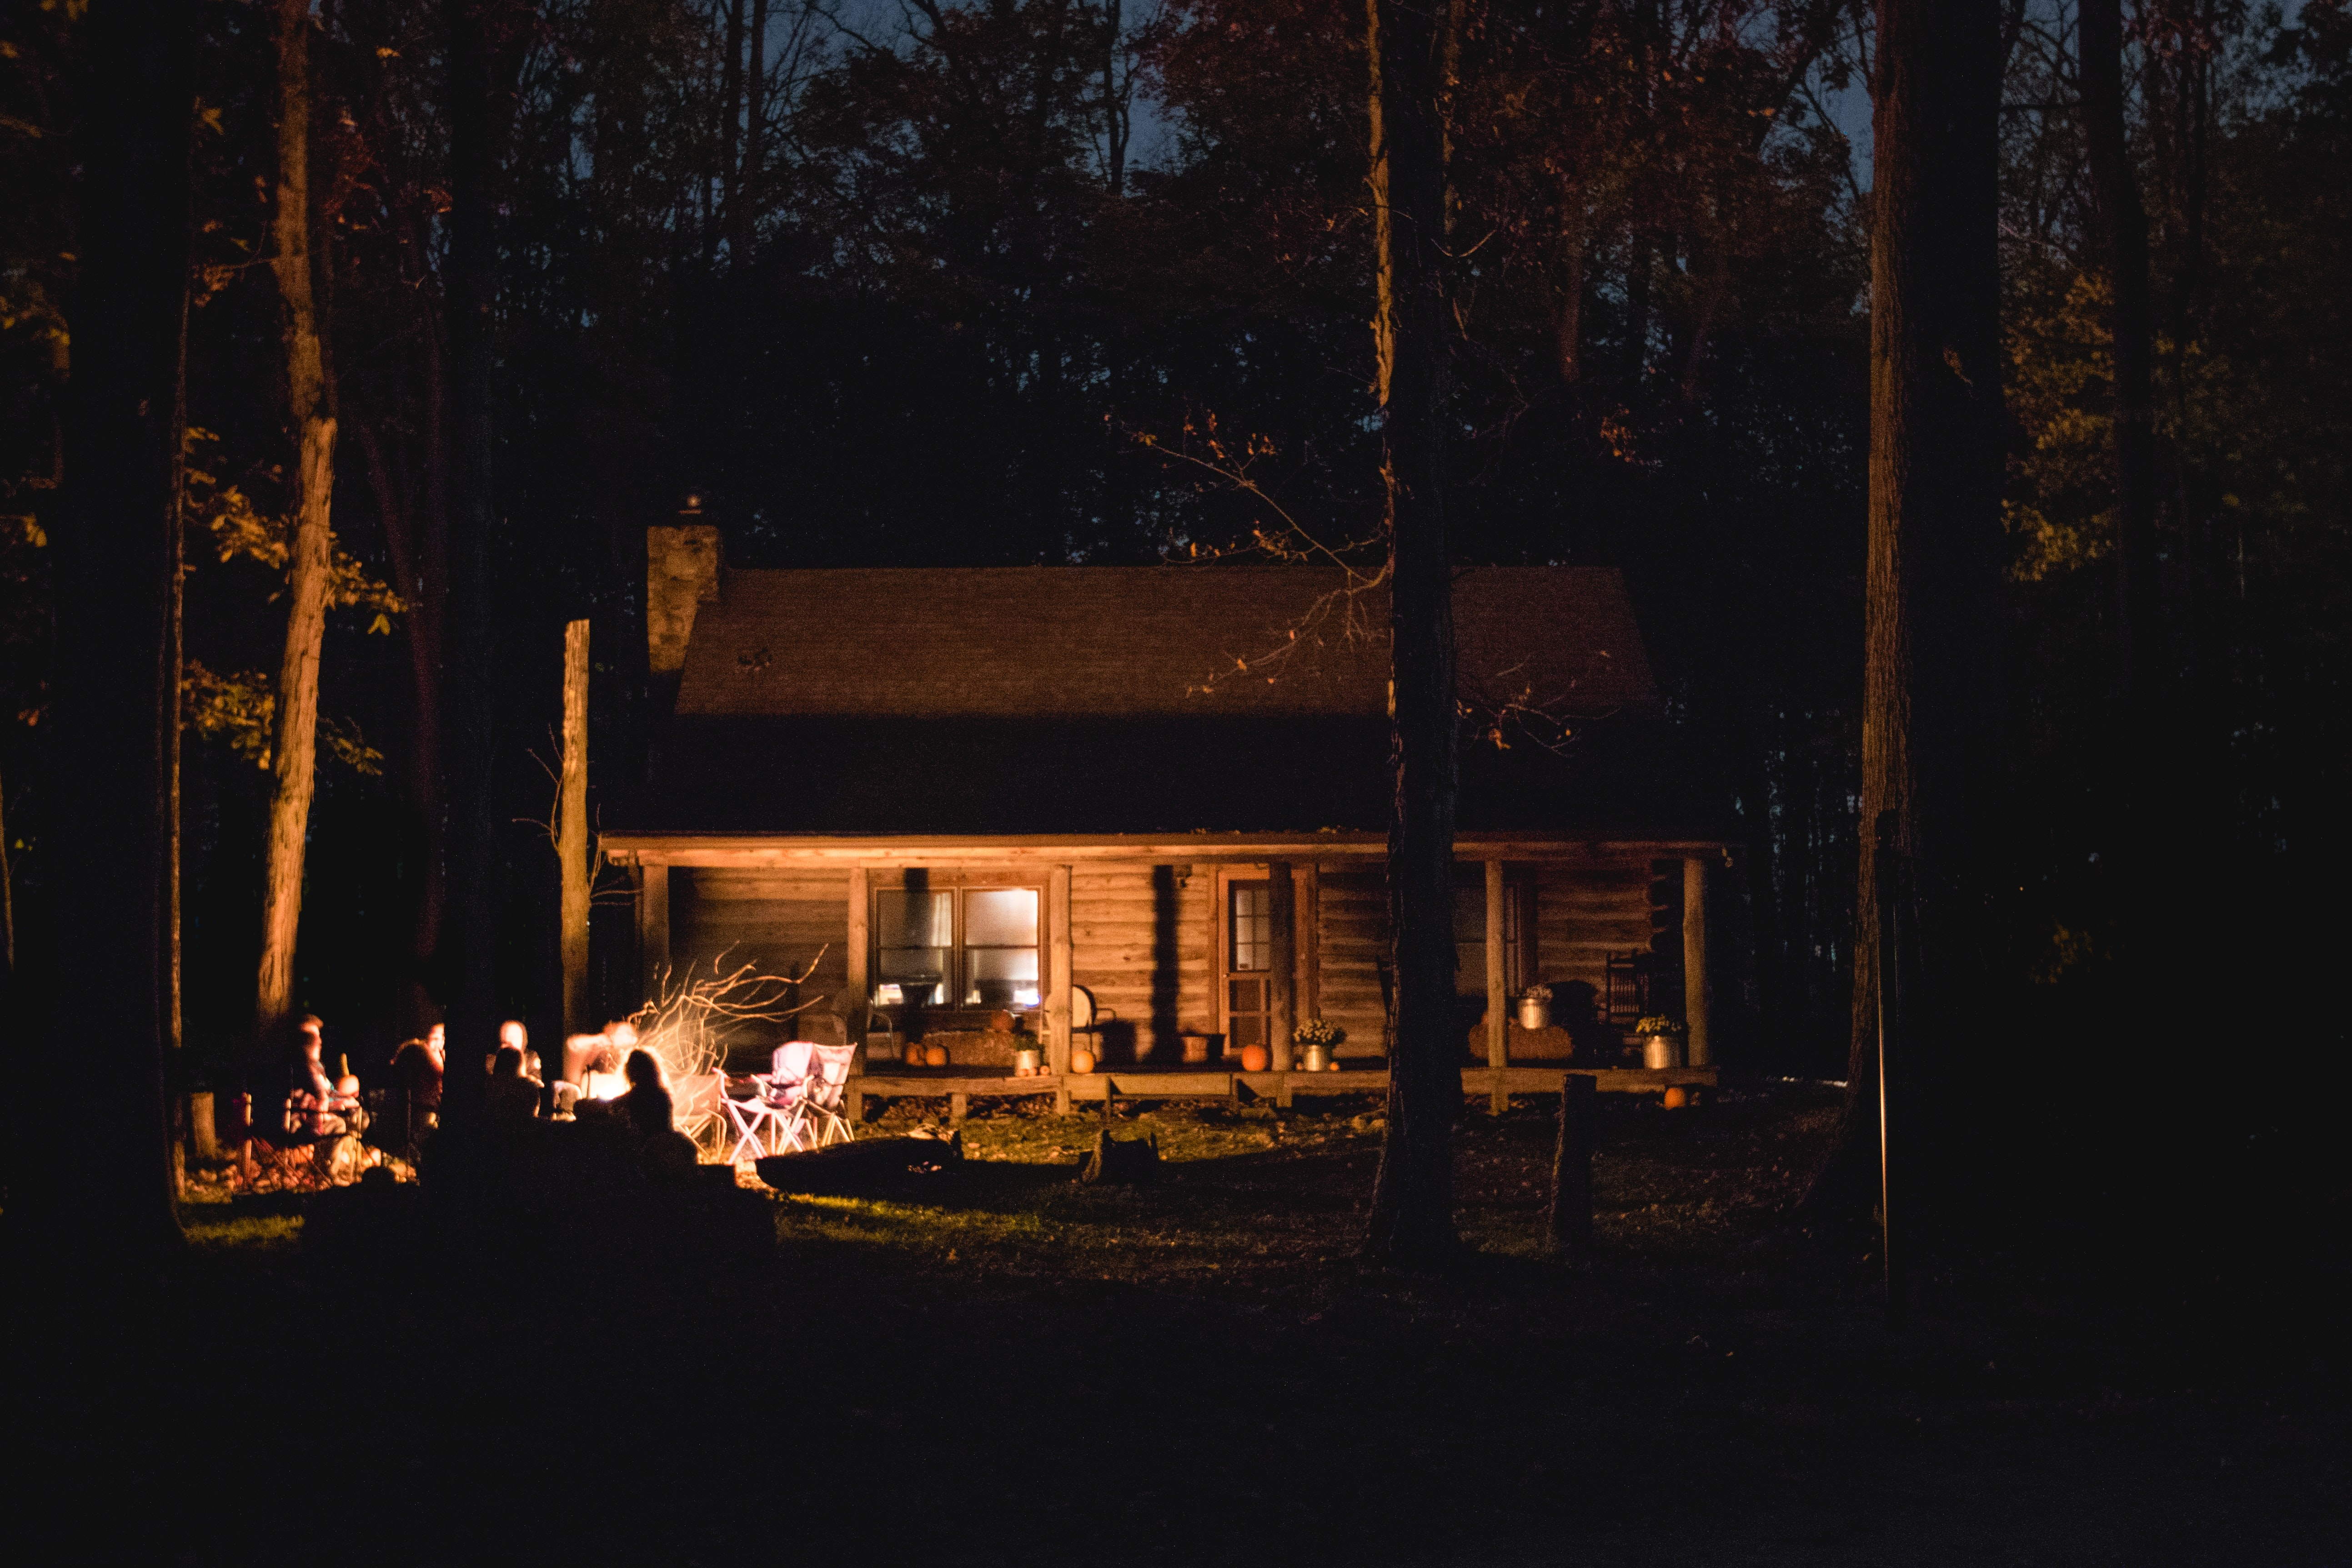 A group of people around a fire at night outside a woodland cabin